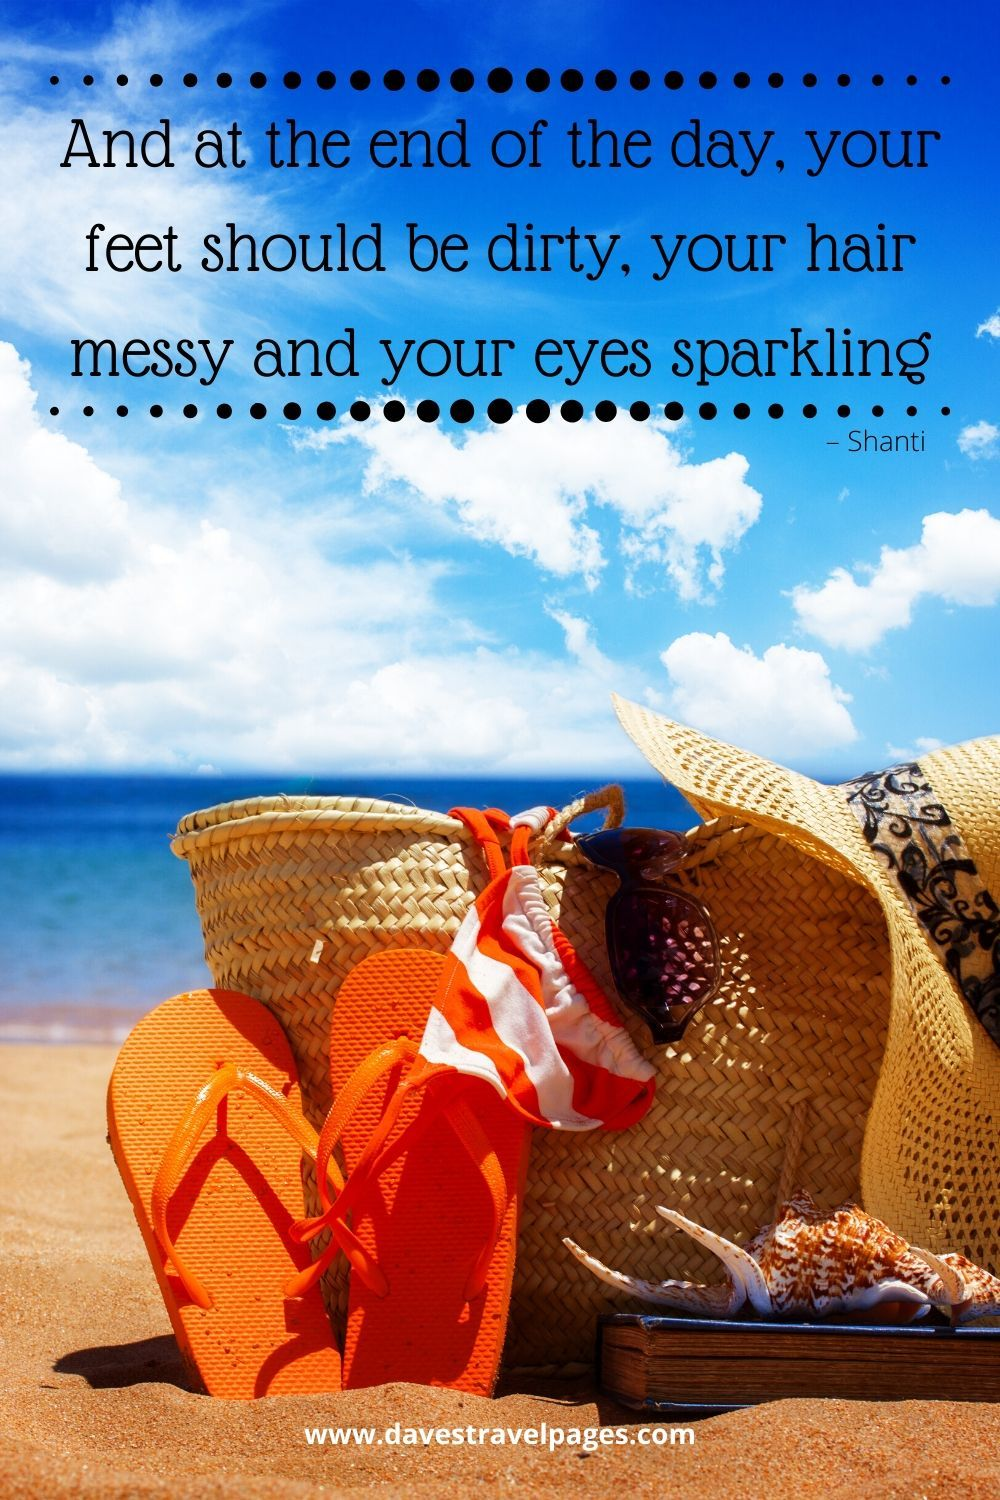 Quotes in Travel: 50 of the Best Travel Quotes in the ...